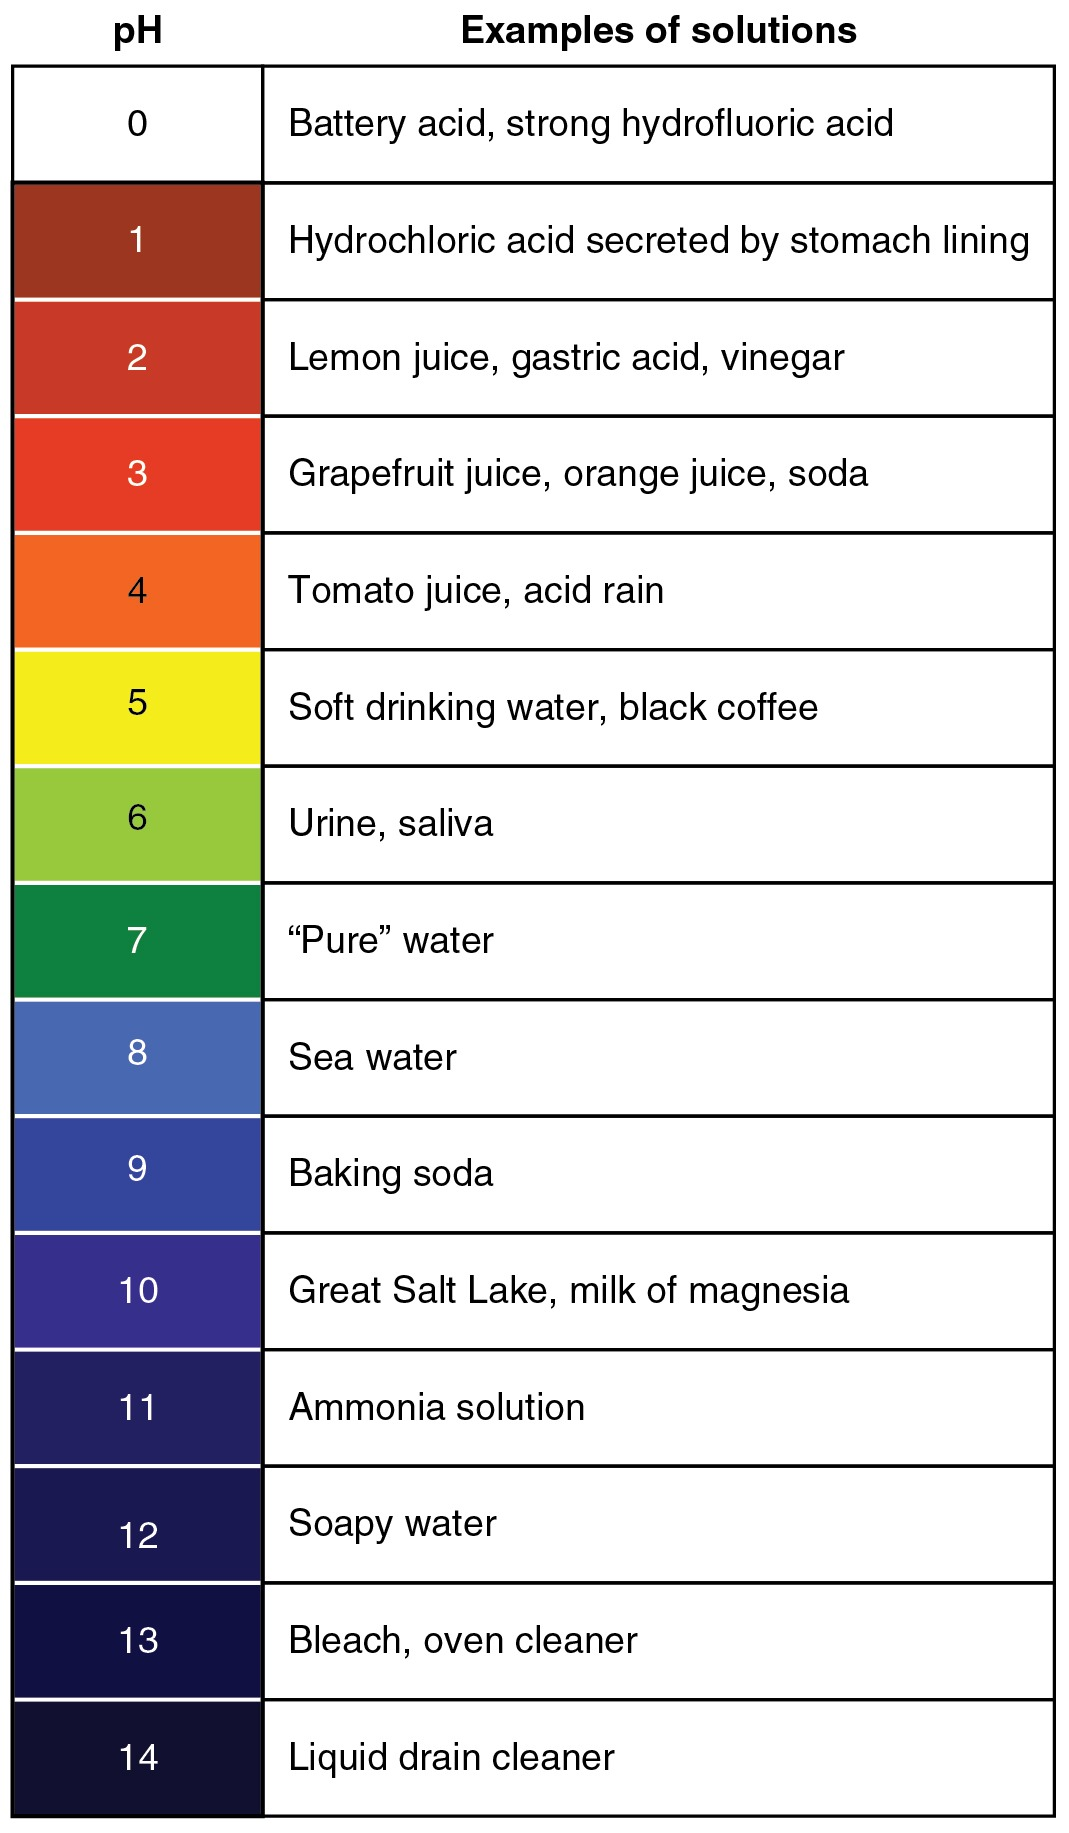 pH Scale with 0 being most acidic and 14 most alkaline